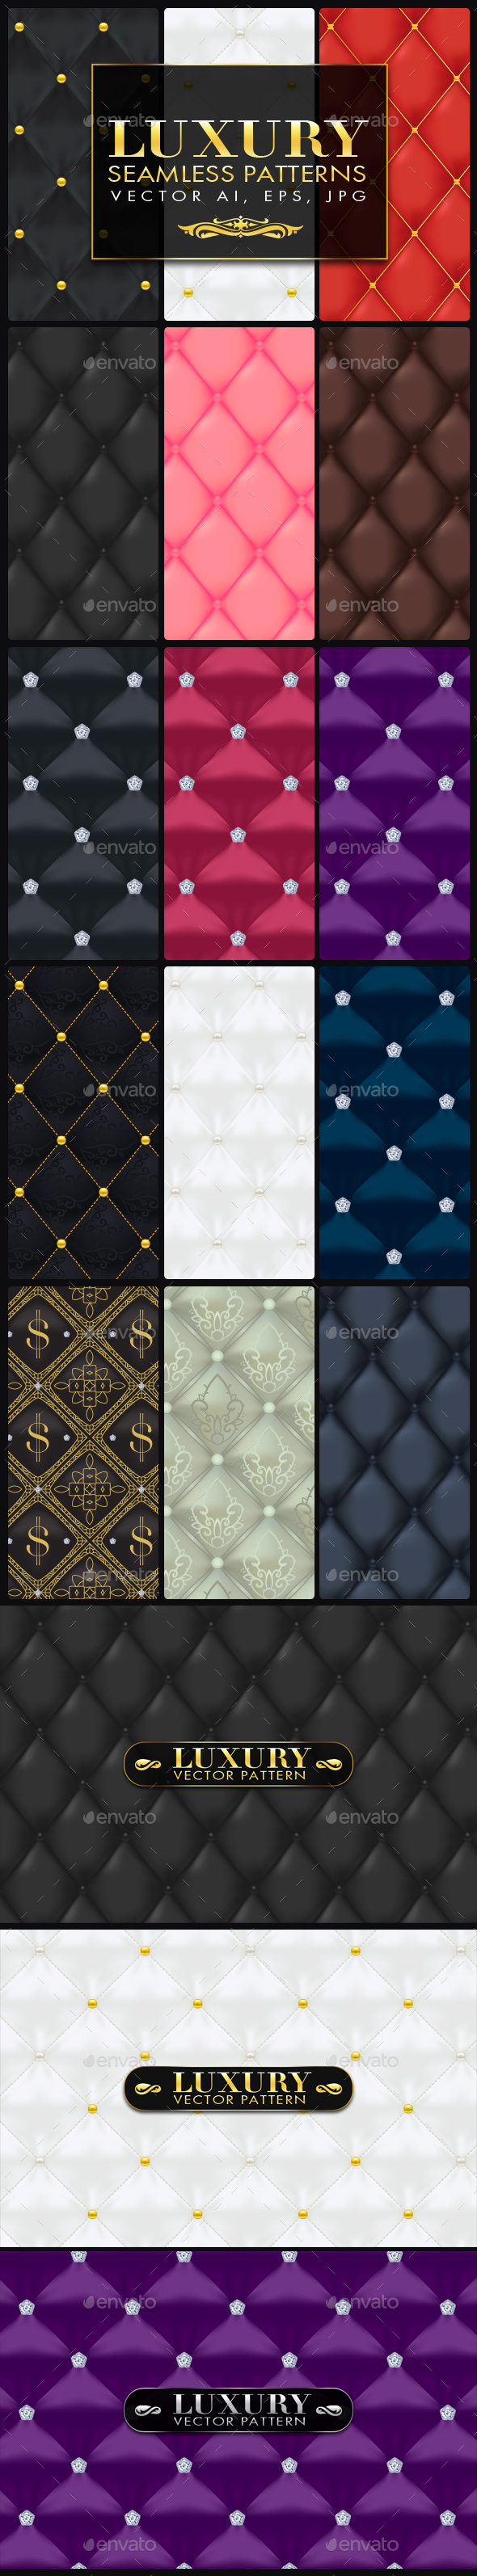 15 Luxury Quilted Seamless Vector Patterns - Patterns Decorative